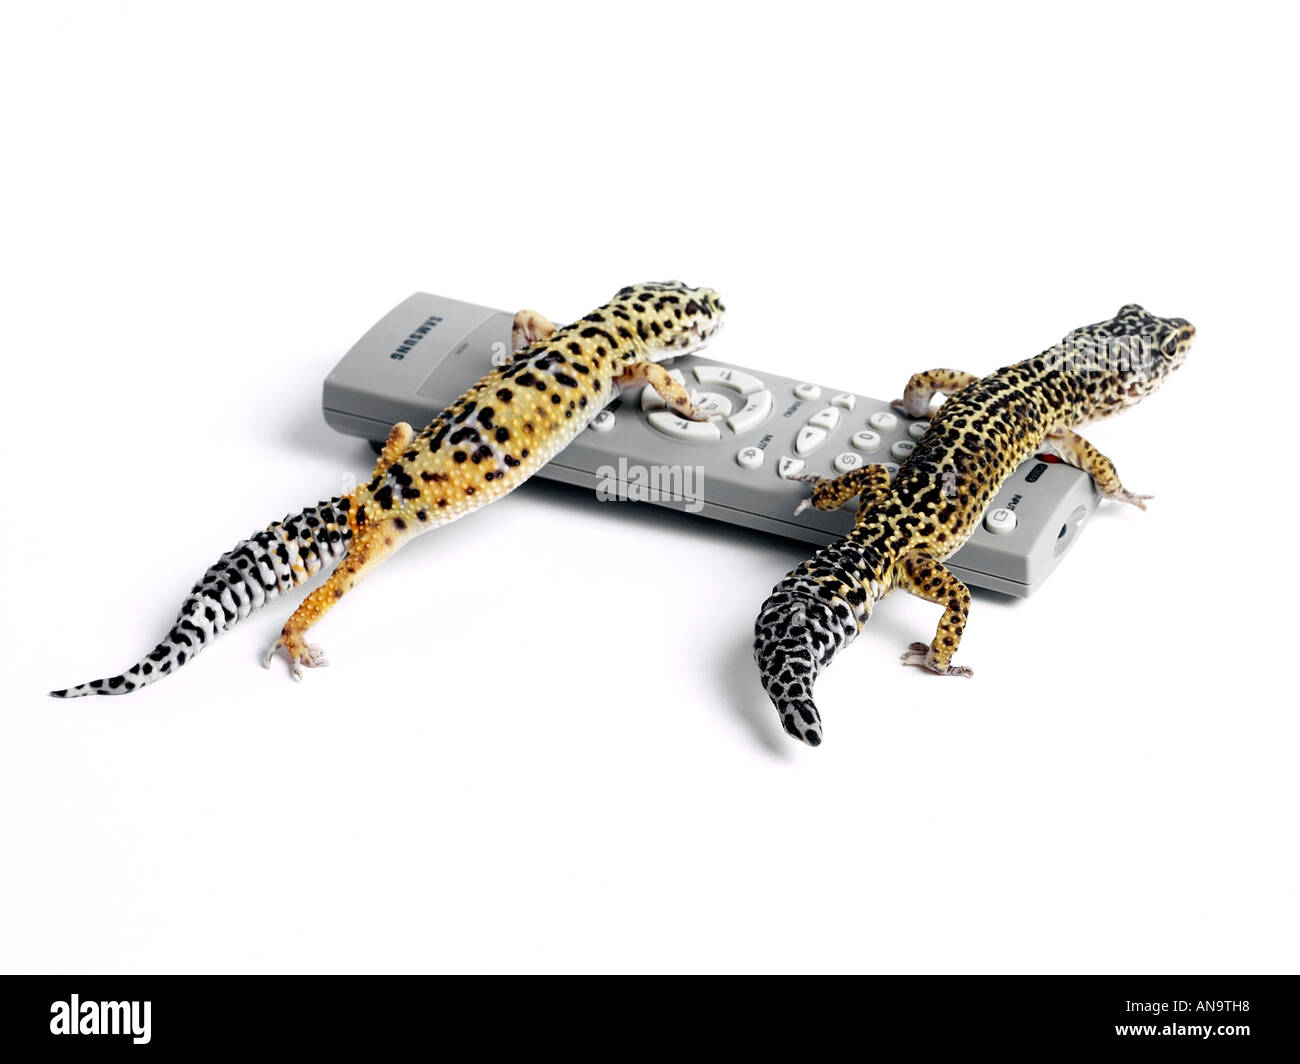 Geckos on a remote control. - Stock Image